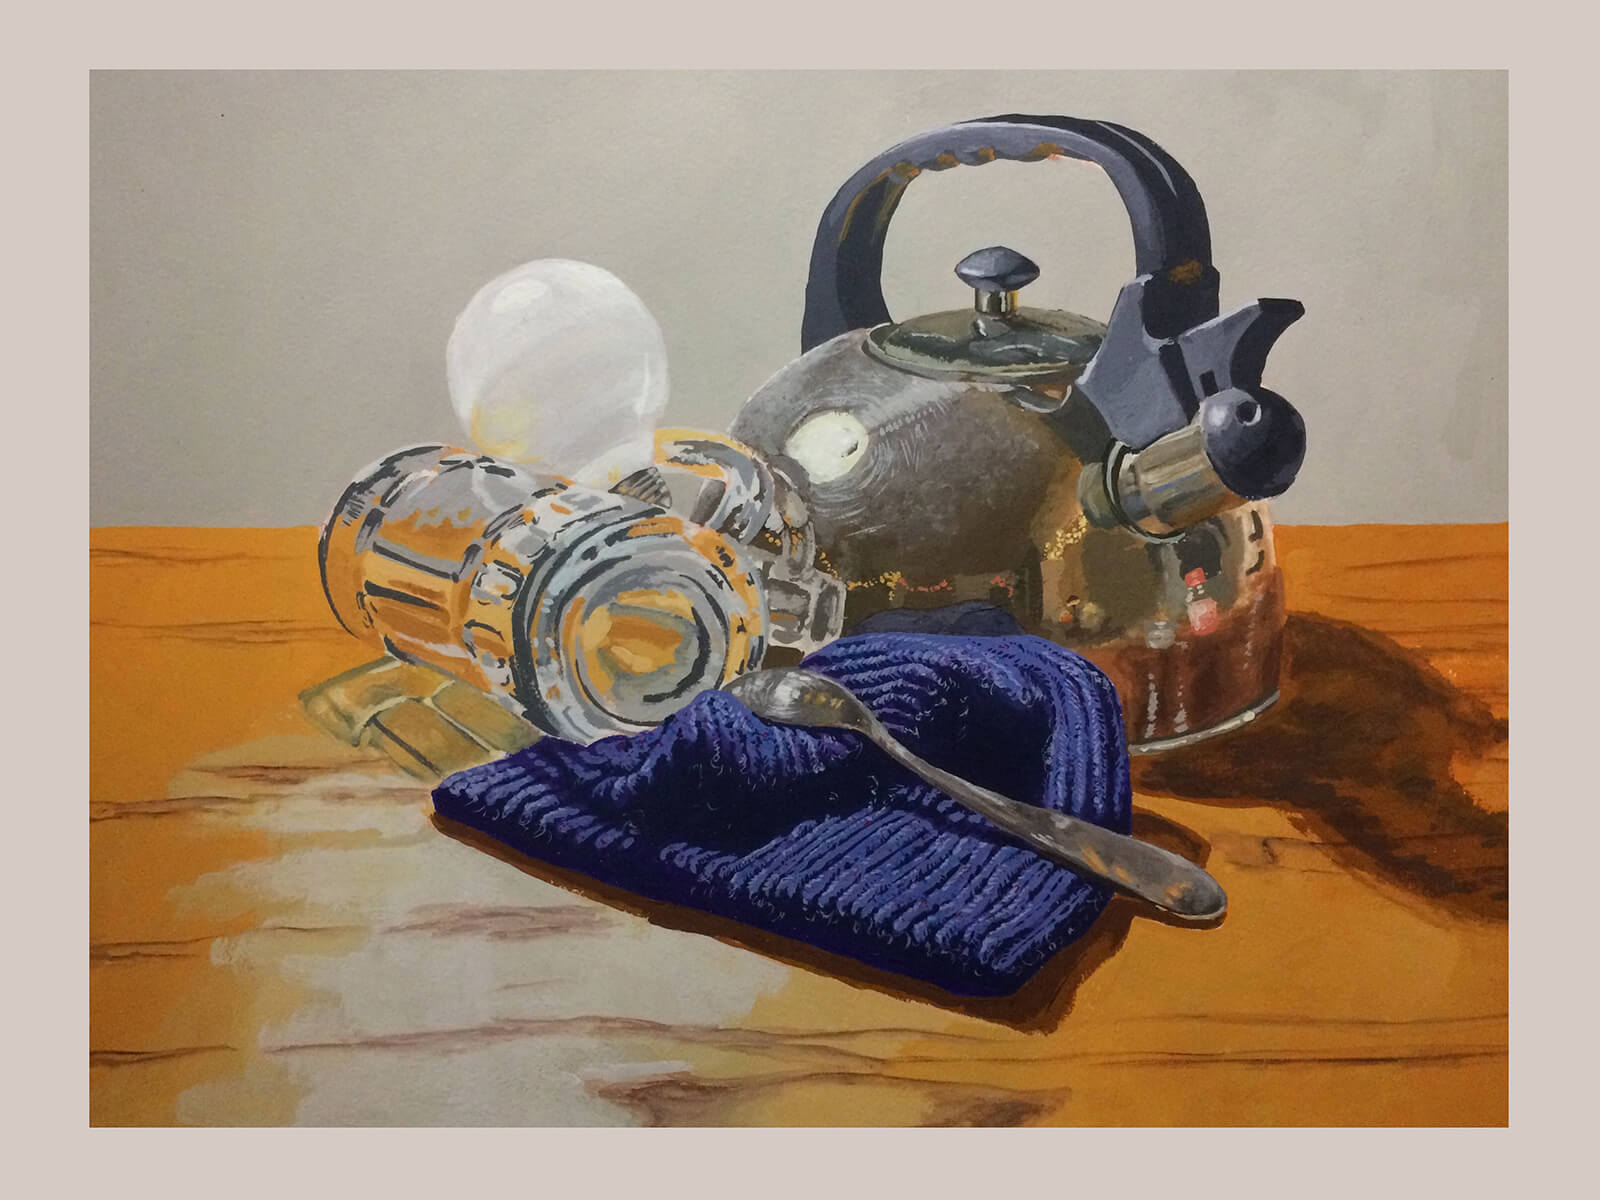 still-life-traditional painting of a tea kettle, lightbulb, blue napkin and spoon on a wooden surface